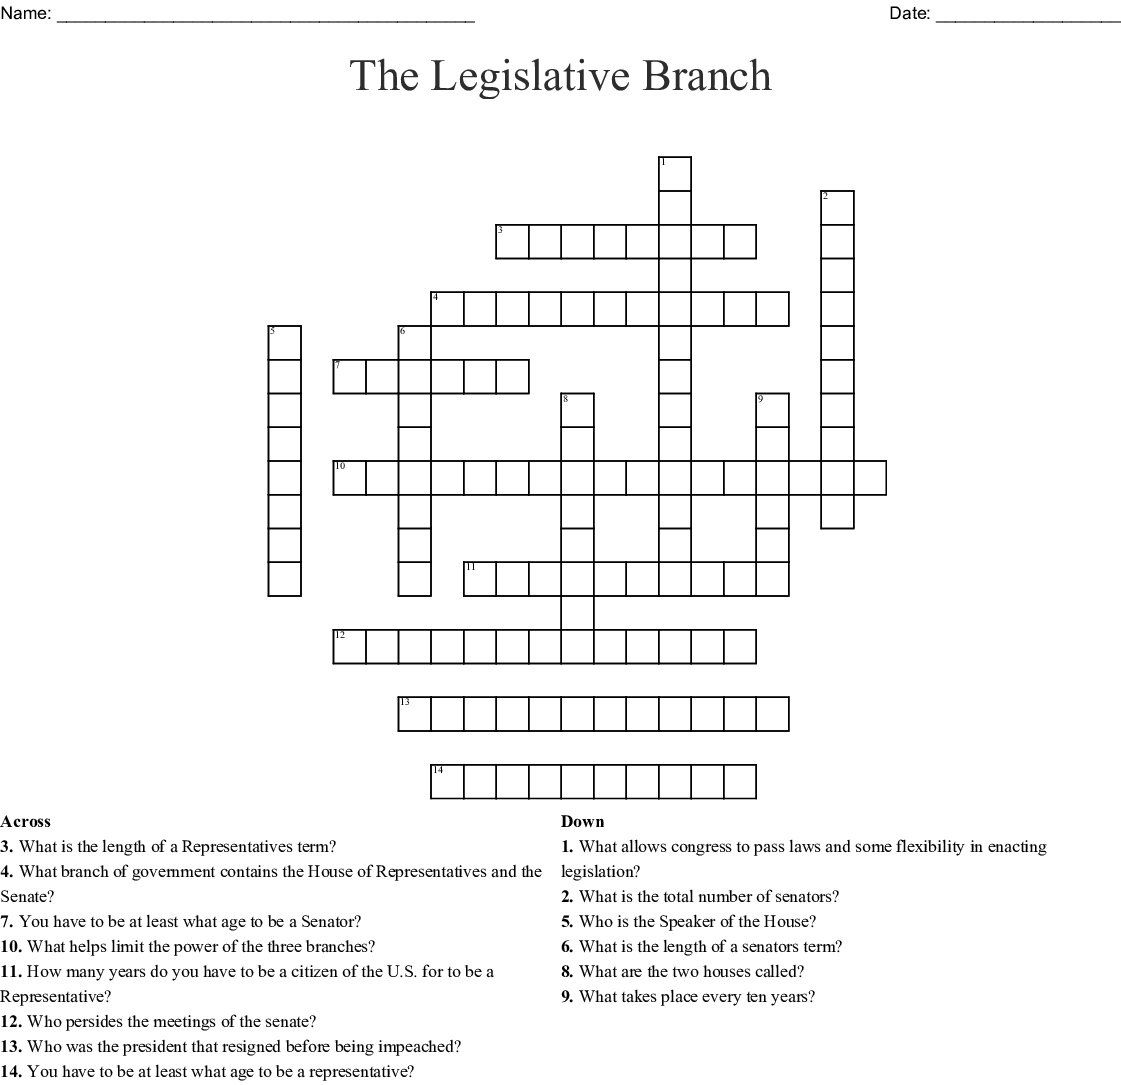 The Legislative Branch Crossword Word